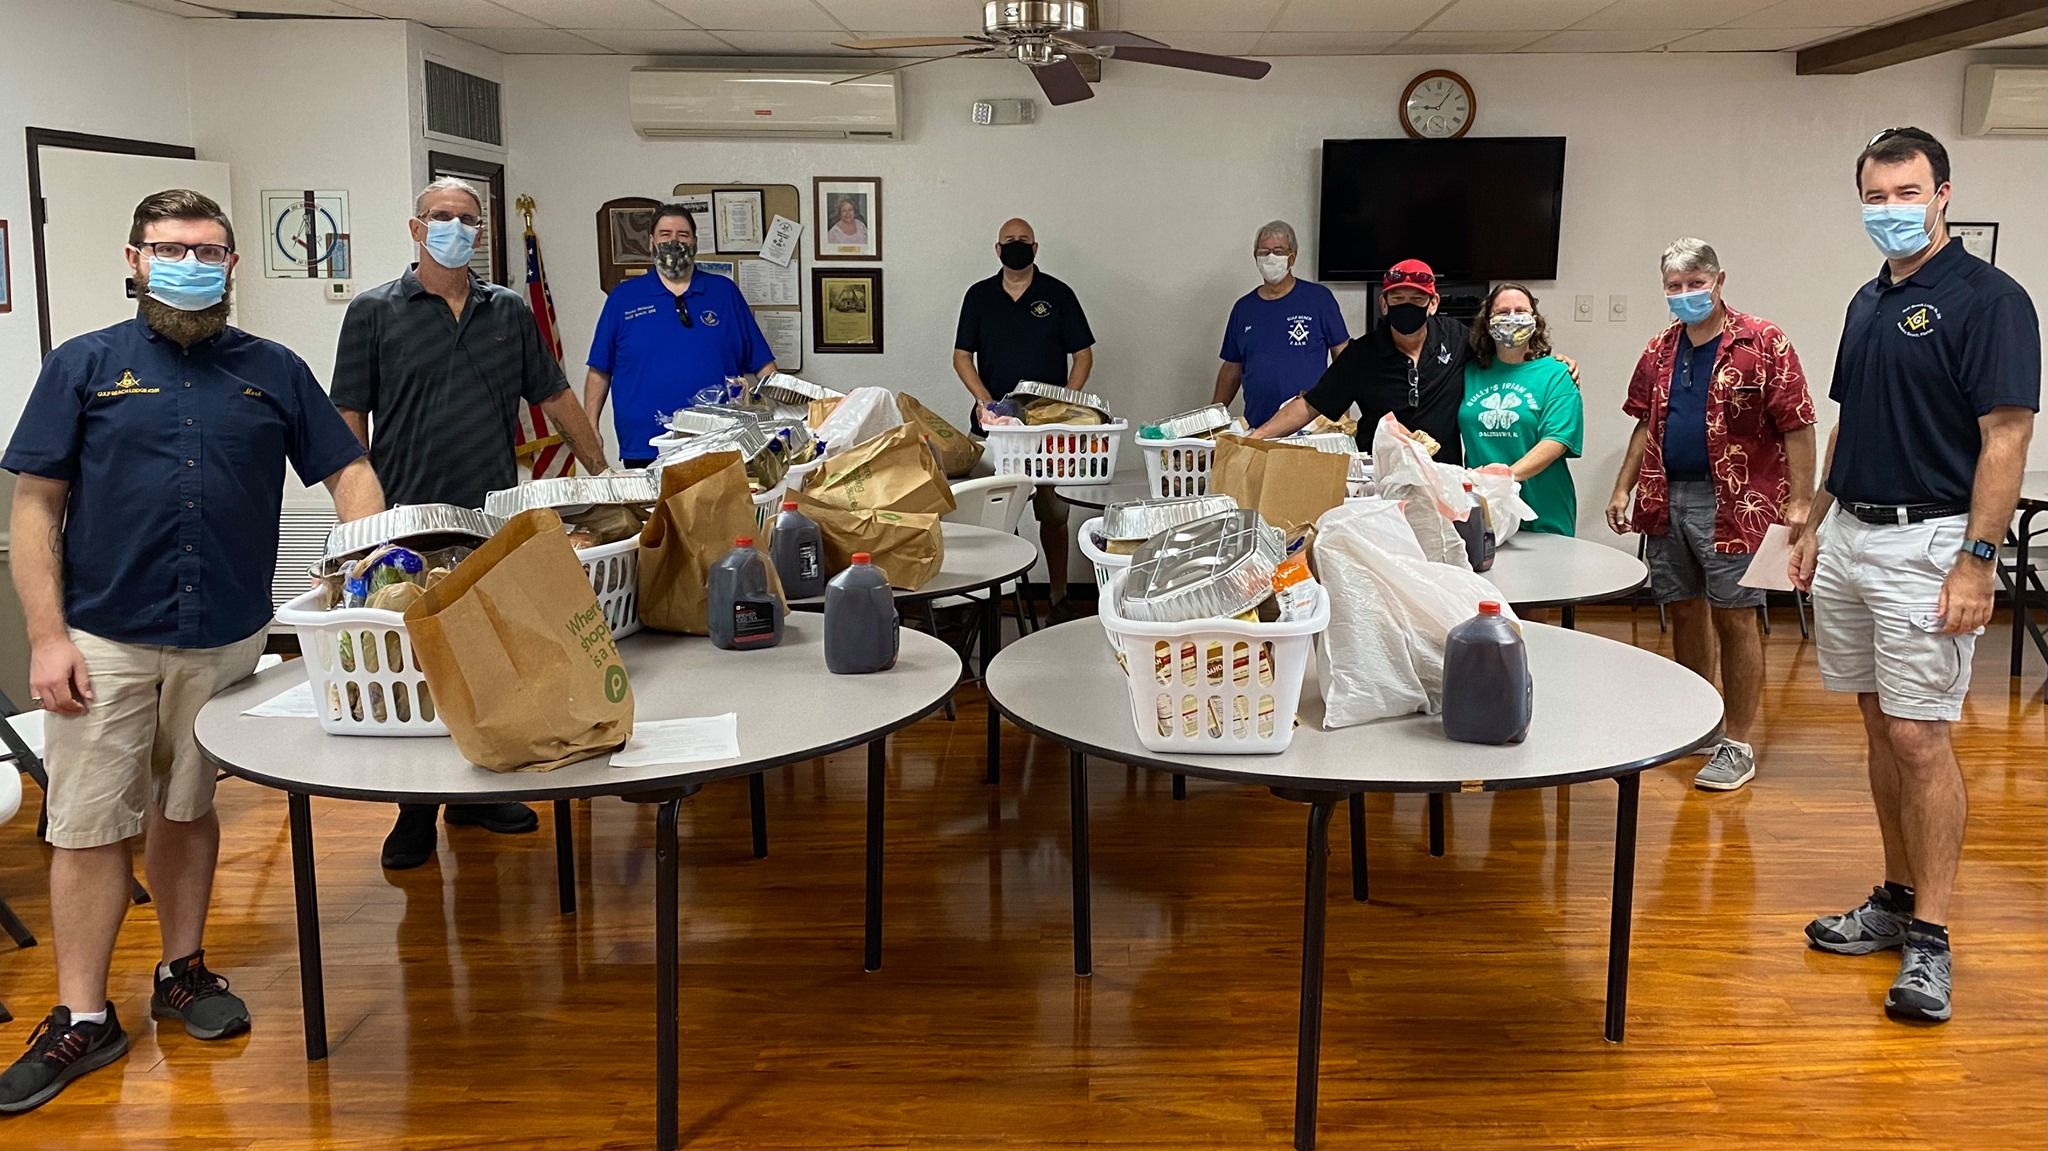 A group of people in a room with face masks on and baskets of Thanksgiving food supplies.